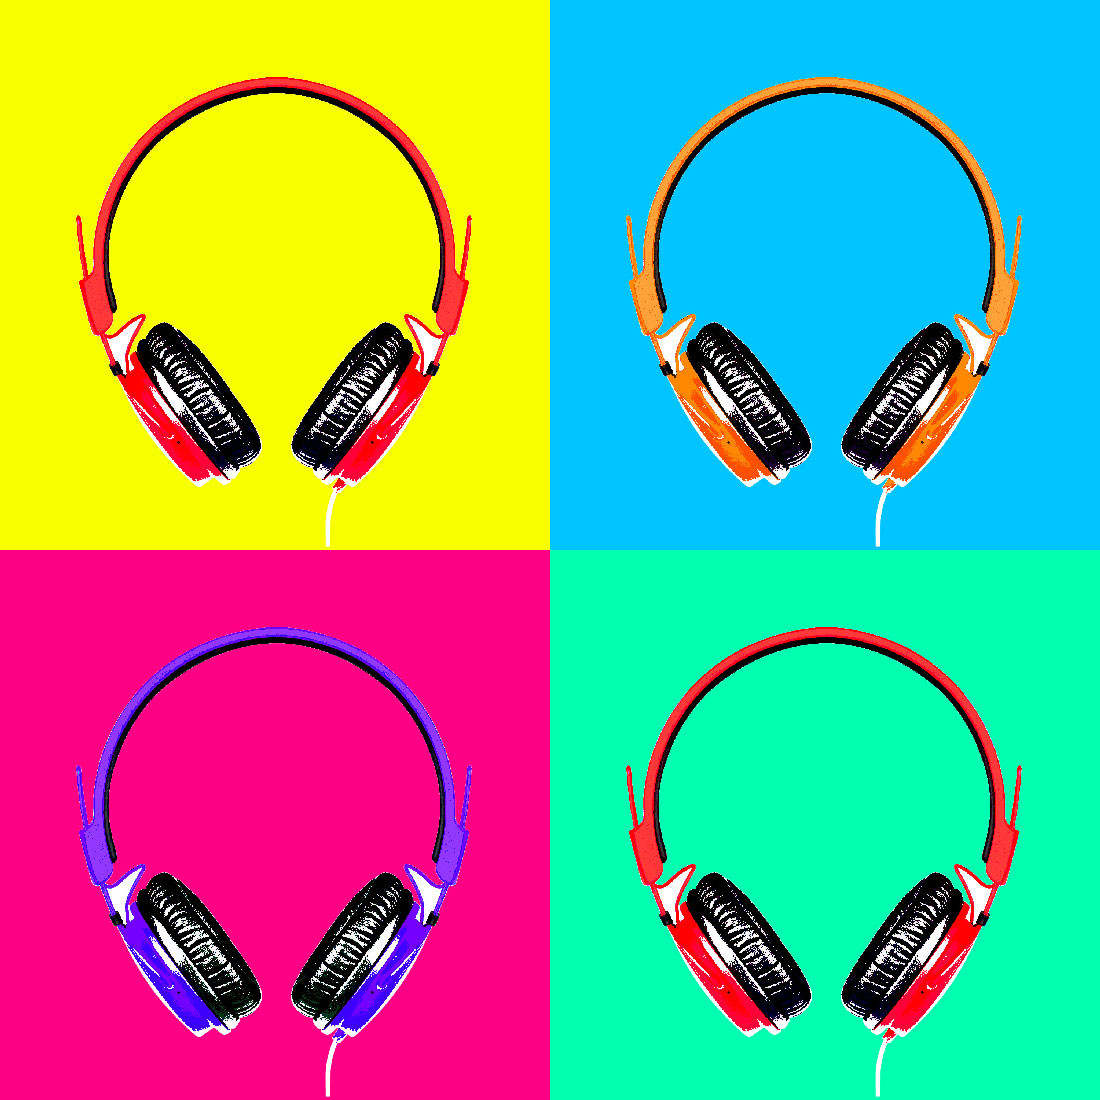 Drawn headphones line art Art  jpeg?v Pop com/s/files/1/0399/6629/products/SR814